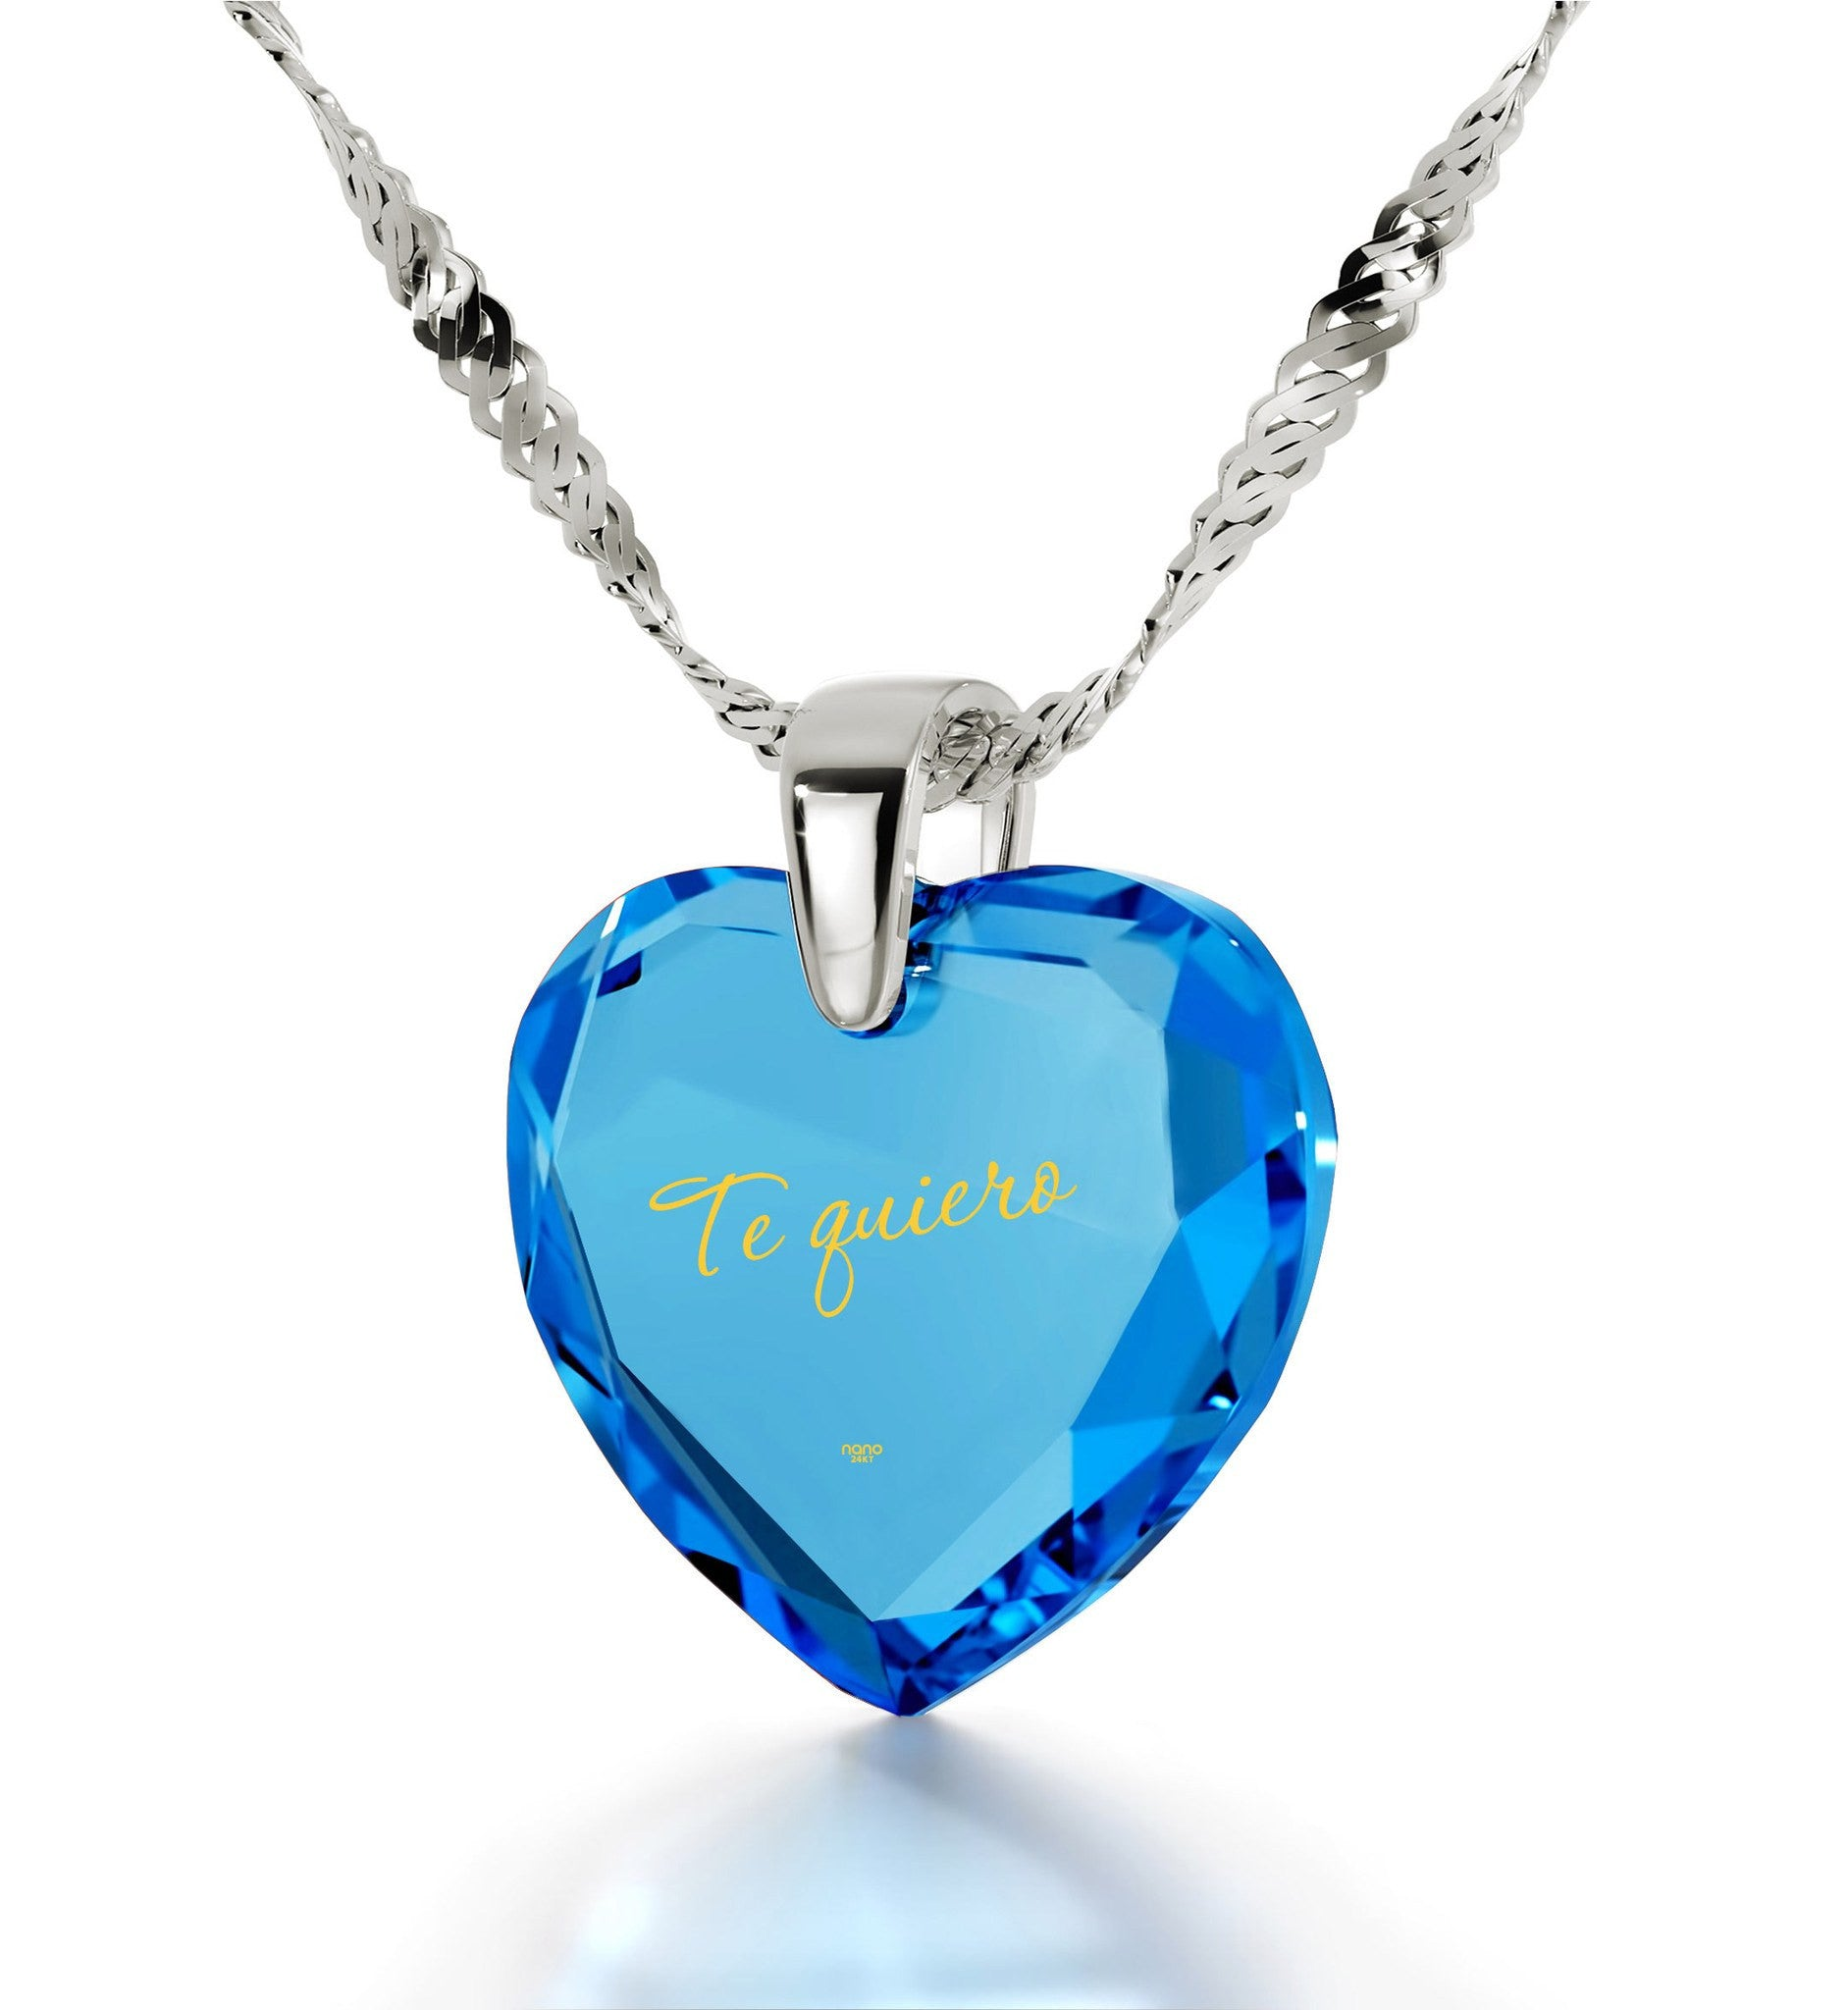 for a i girlfriend her best gift white quiero nano ideas birthday zirconia from necklace necklaces cz products you gold heart valentines te cubic in spanish love jewelry day wife